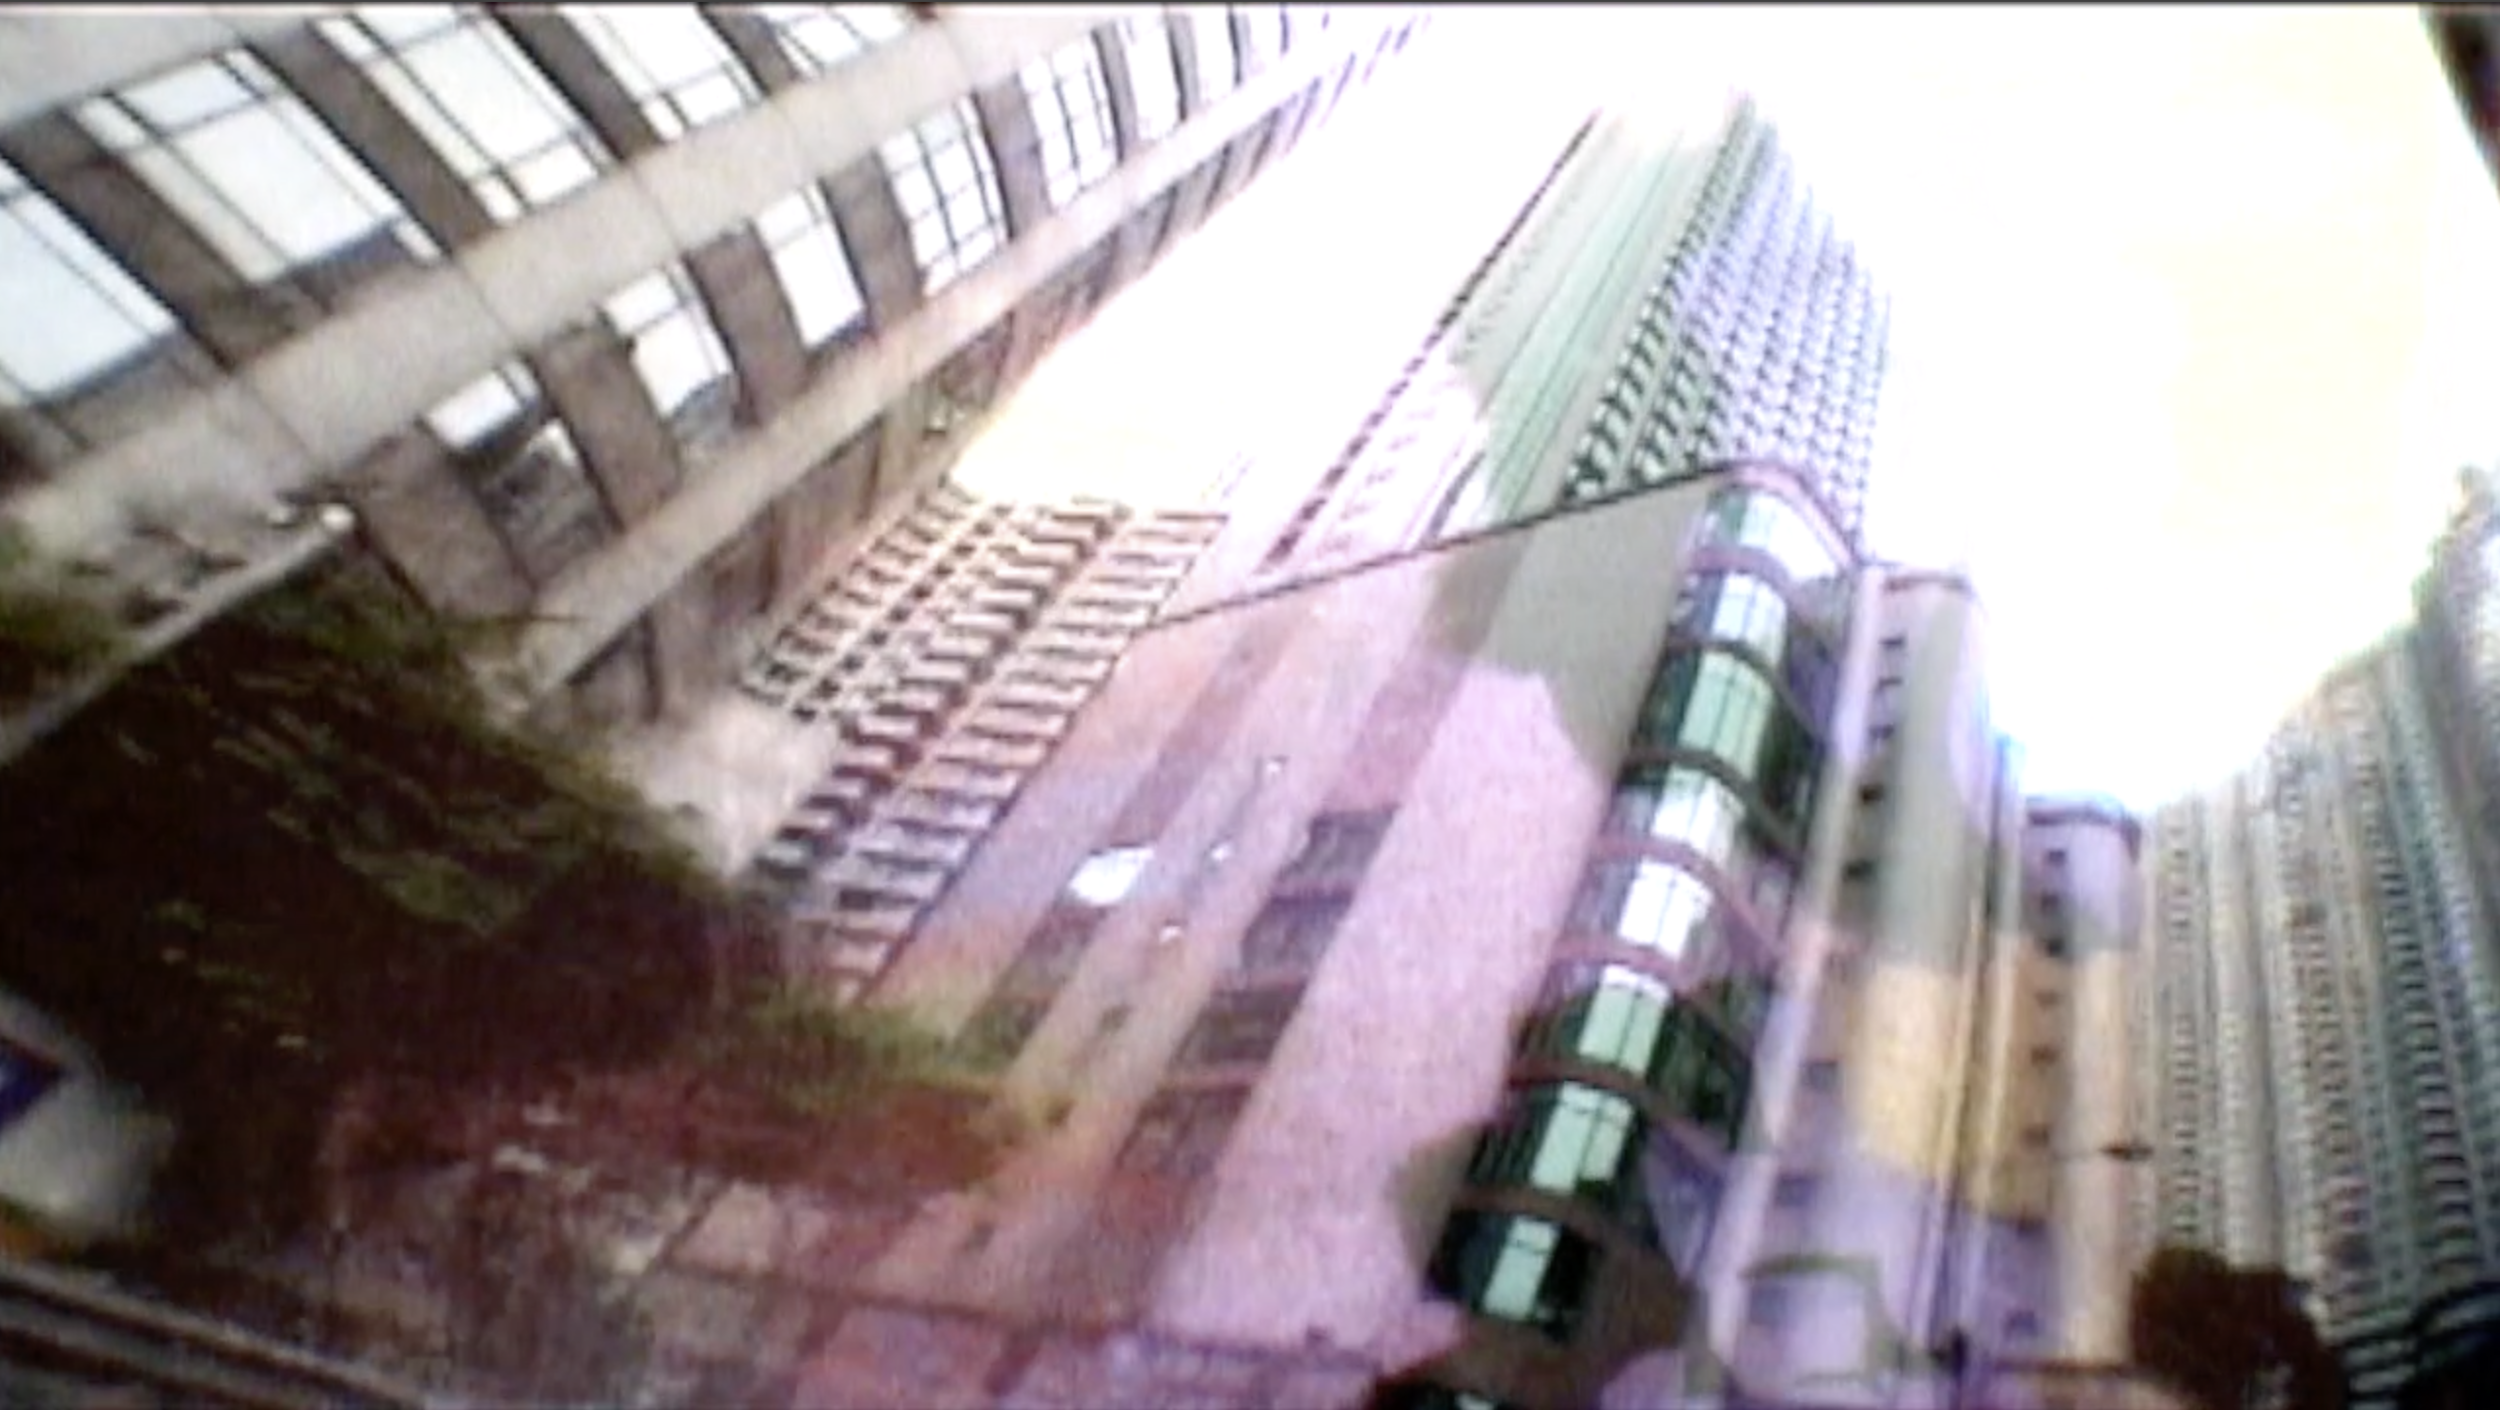 And Counting  (2001), video still, courtesy of the artist